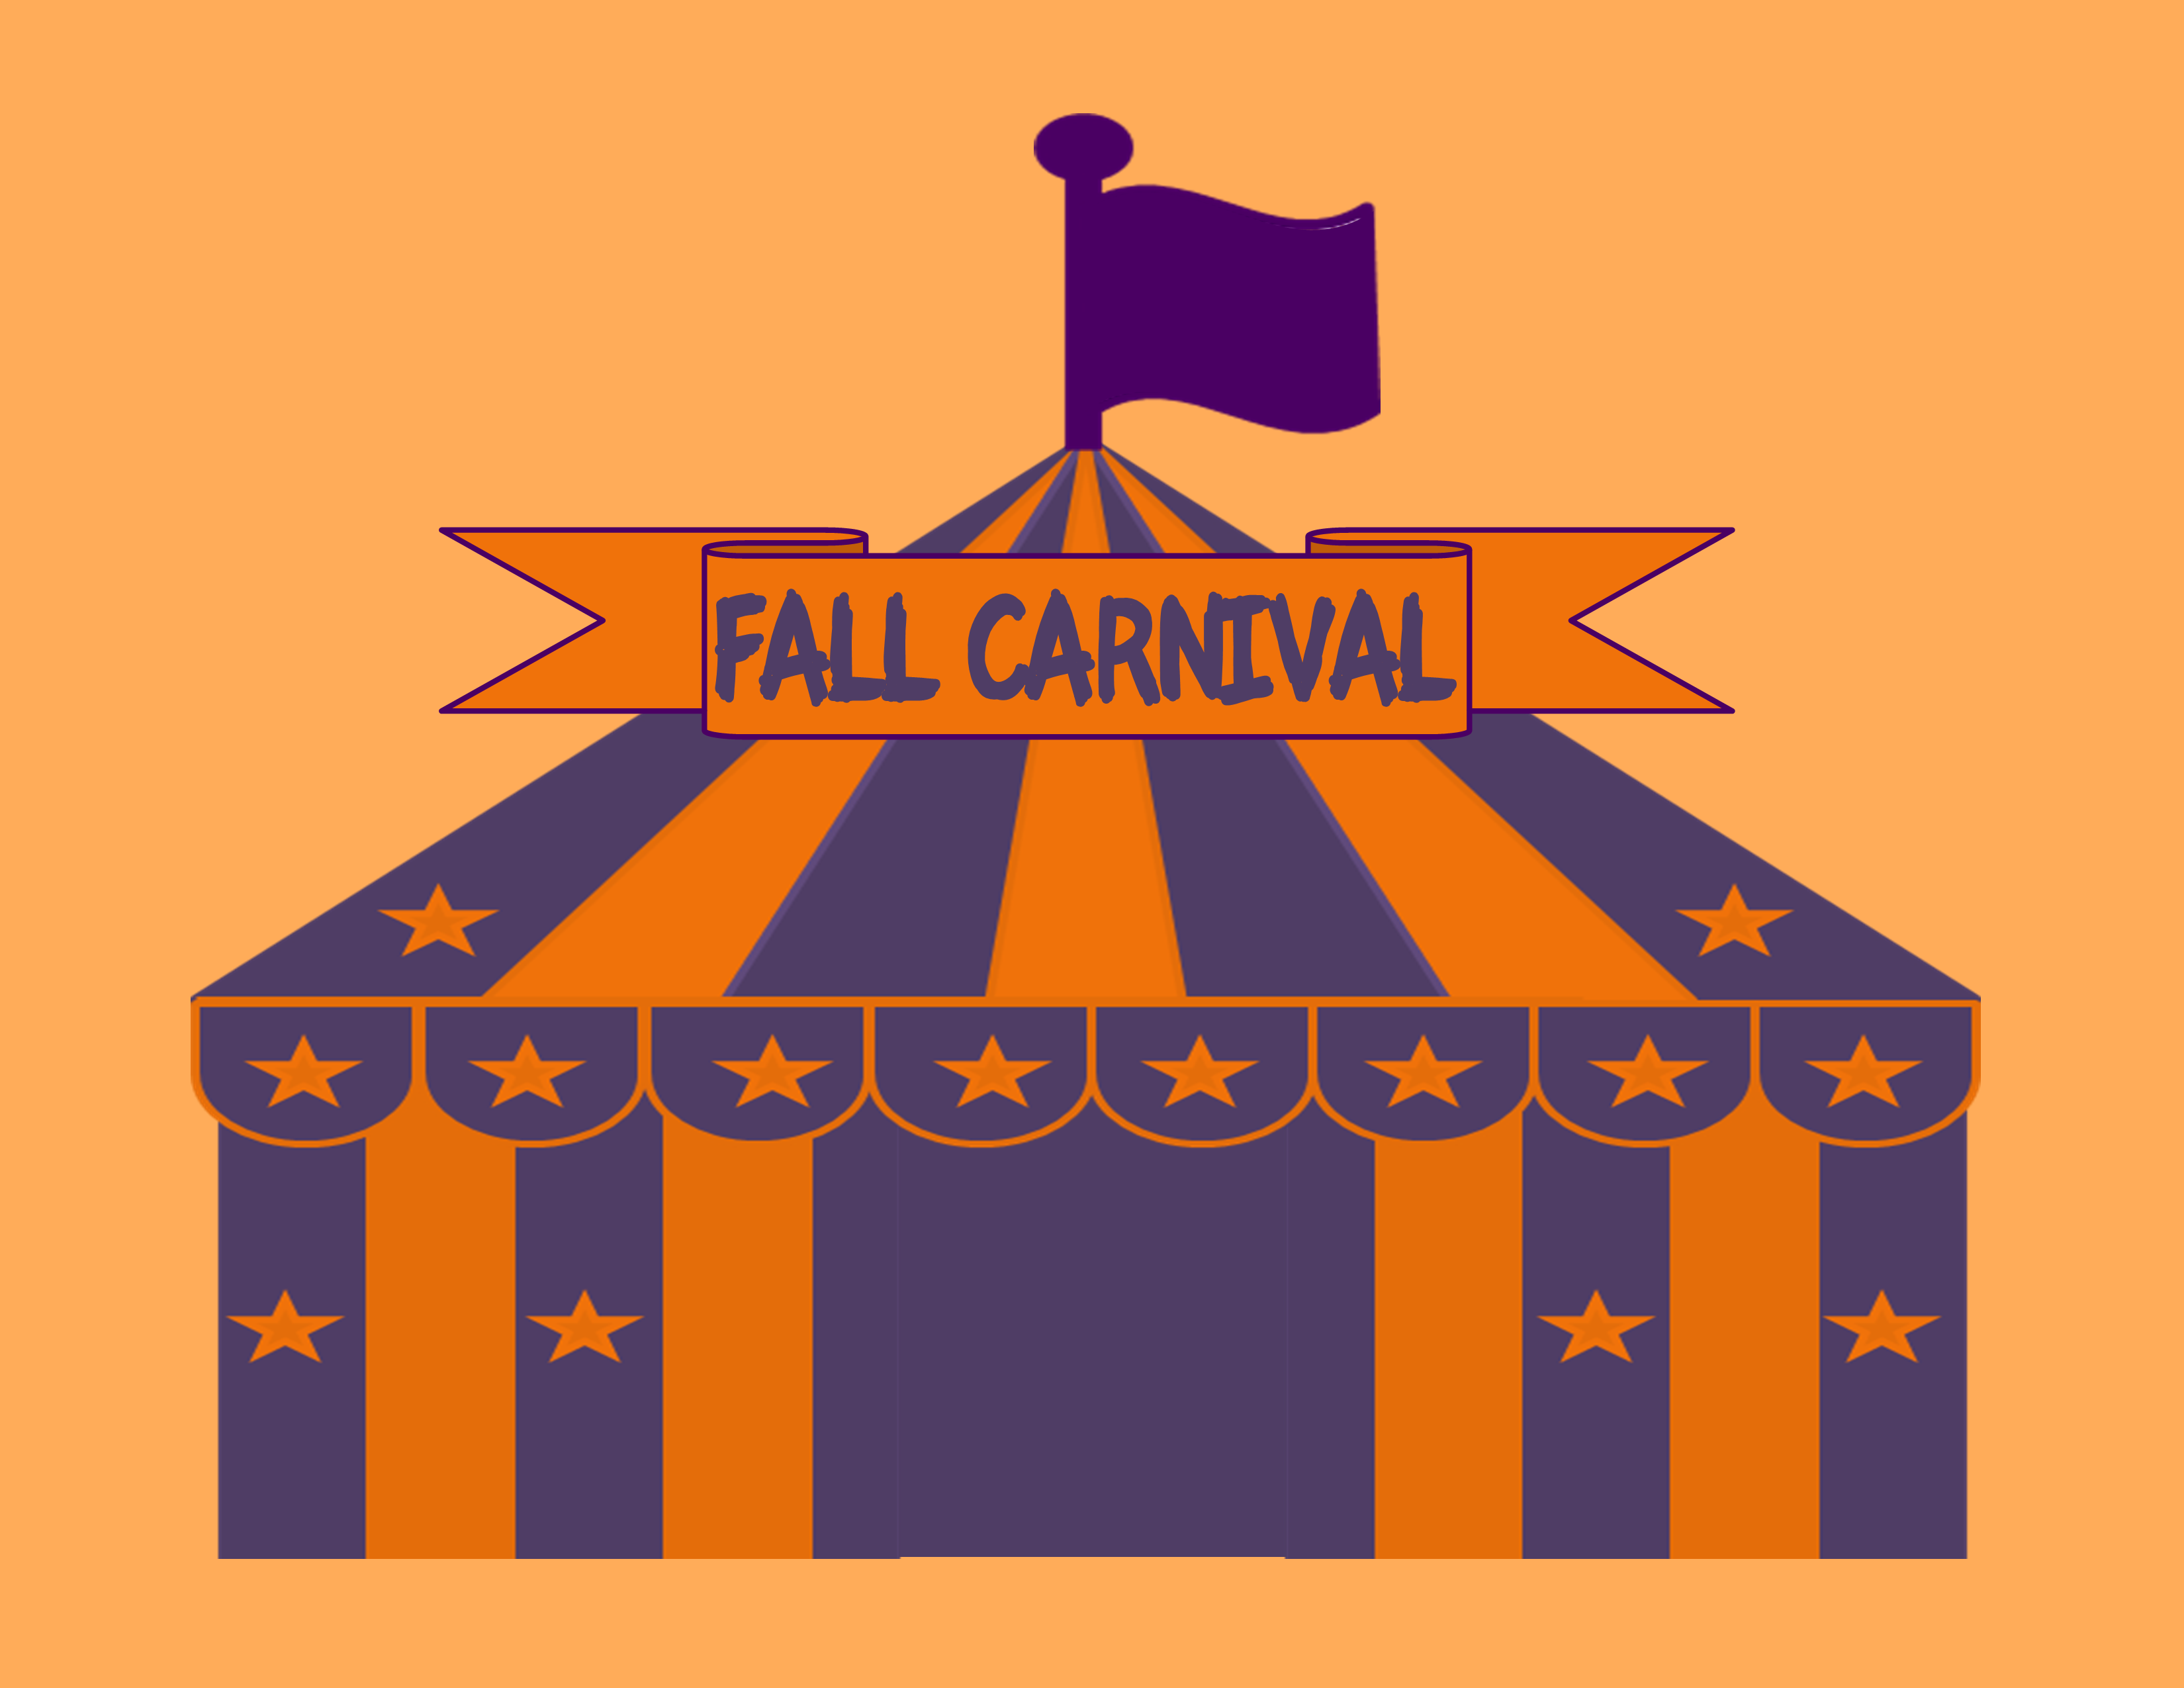 Fall Carnival illustration